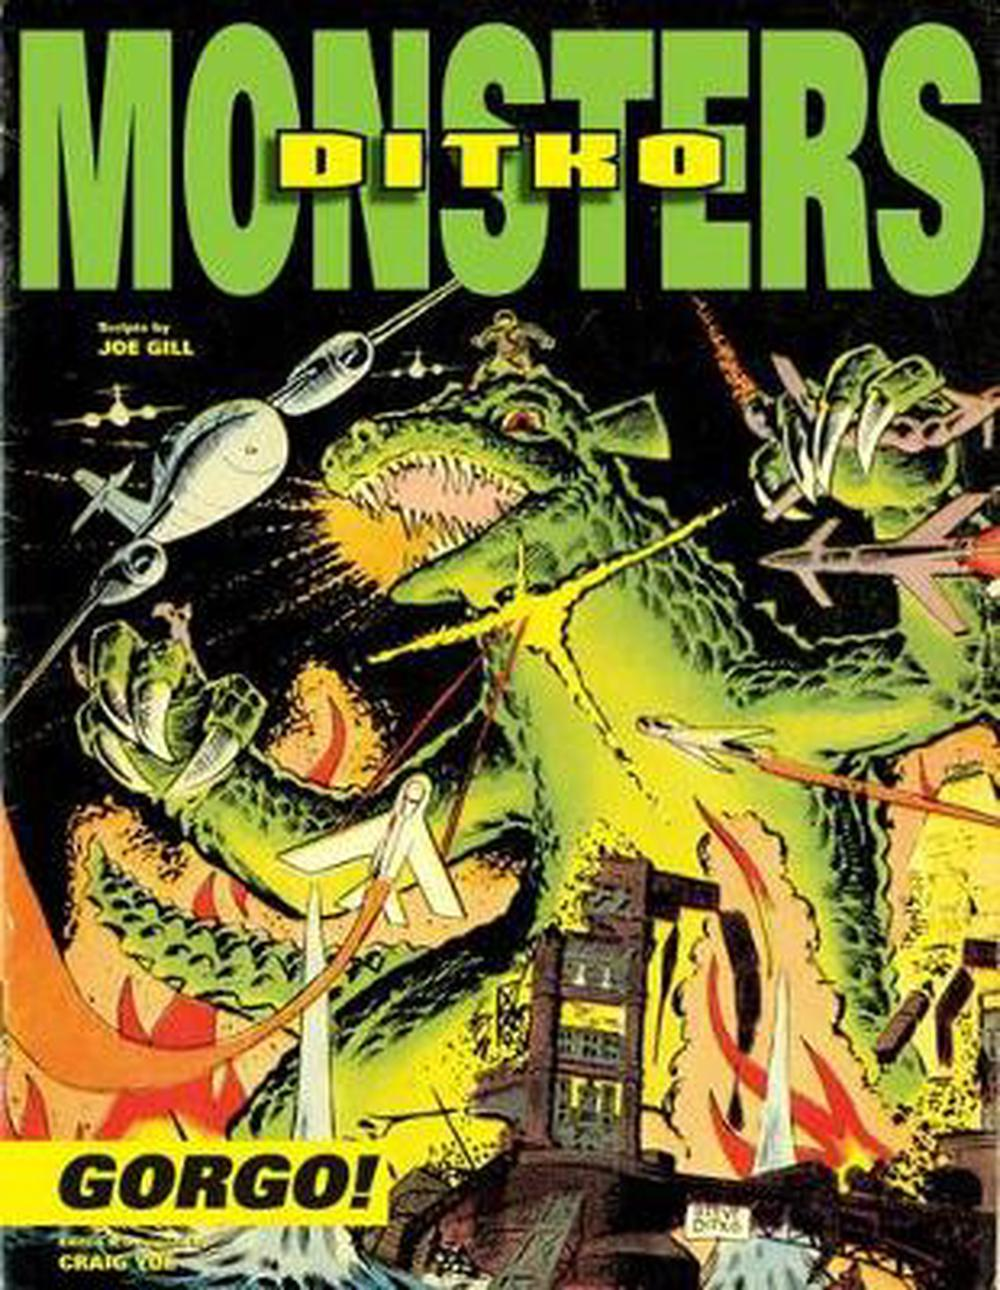 Steve Ditko's Monsters